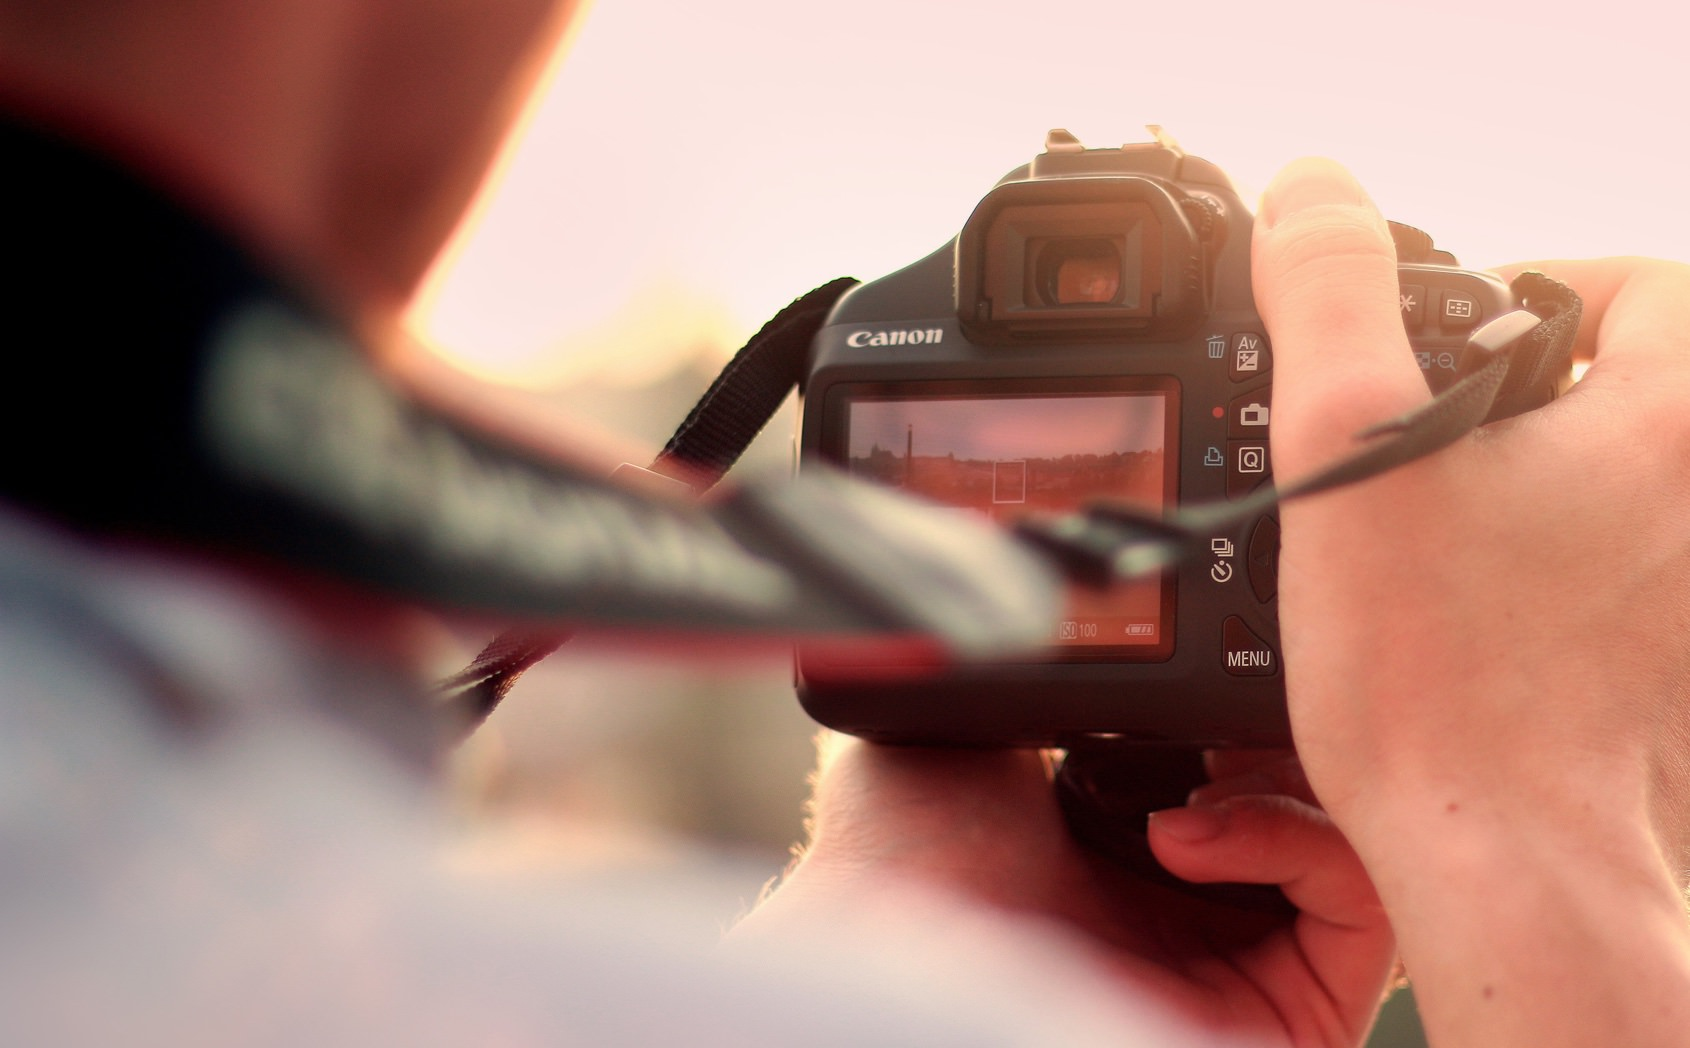 Closeup of Canon DSLR camera in photographer's hands